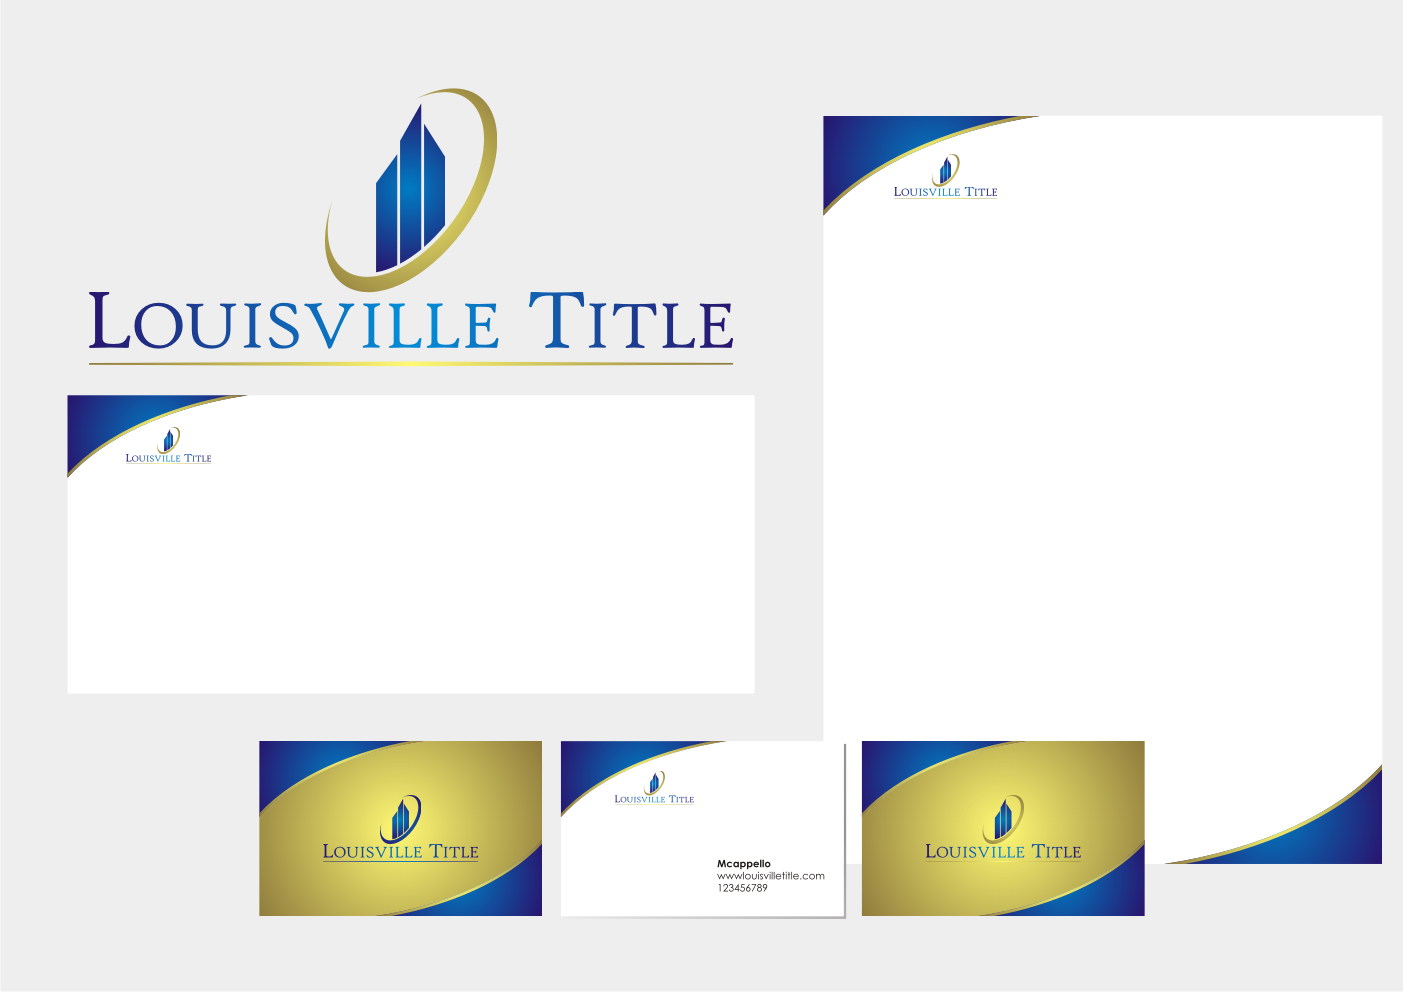 Create the next logo for Louisville Title